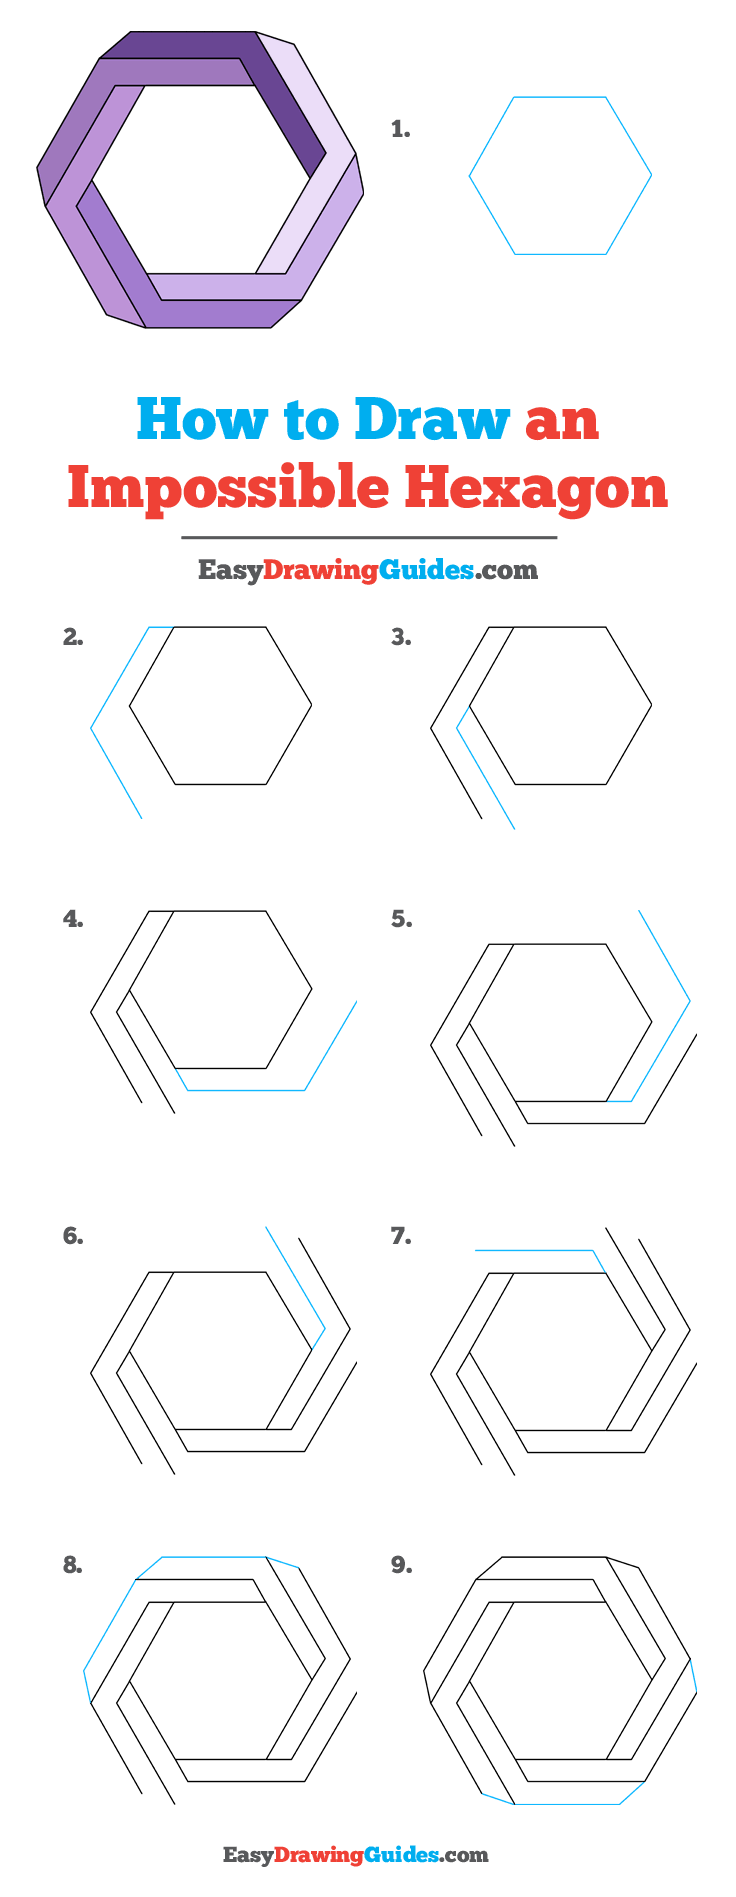 How to Draw Impossible Hexagon